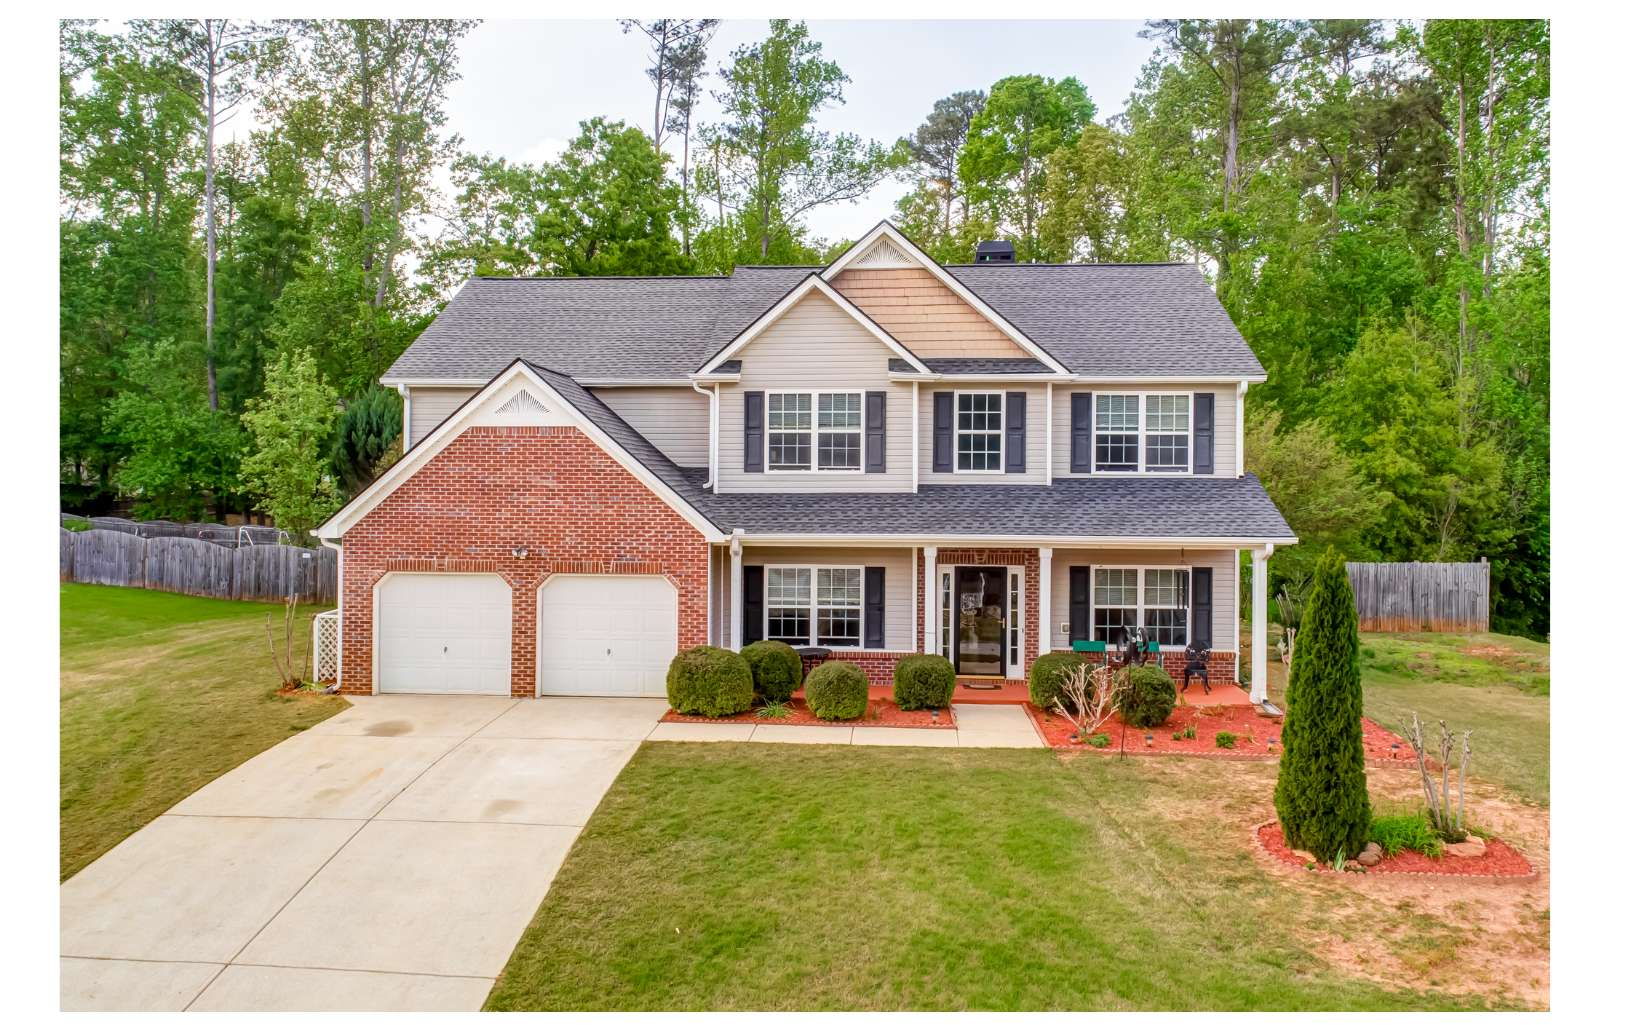 123 MARY HILL WAY, Douglasville, Georgia 30134, 6 Bedrooms Bedrooms, ,3 BathroomsBathrooms,Single Family,For Sale,123 MARY HILL WAY,306522